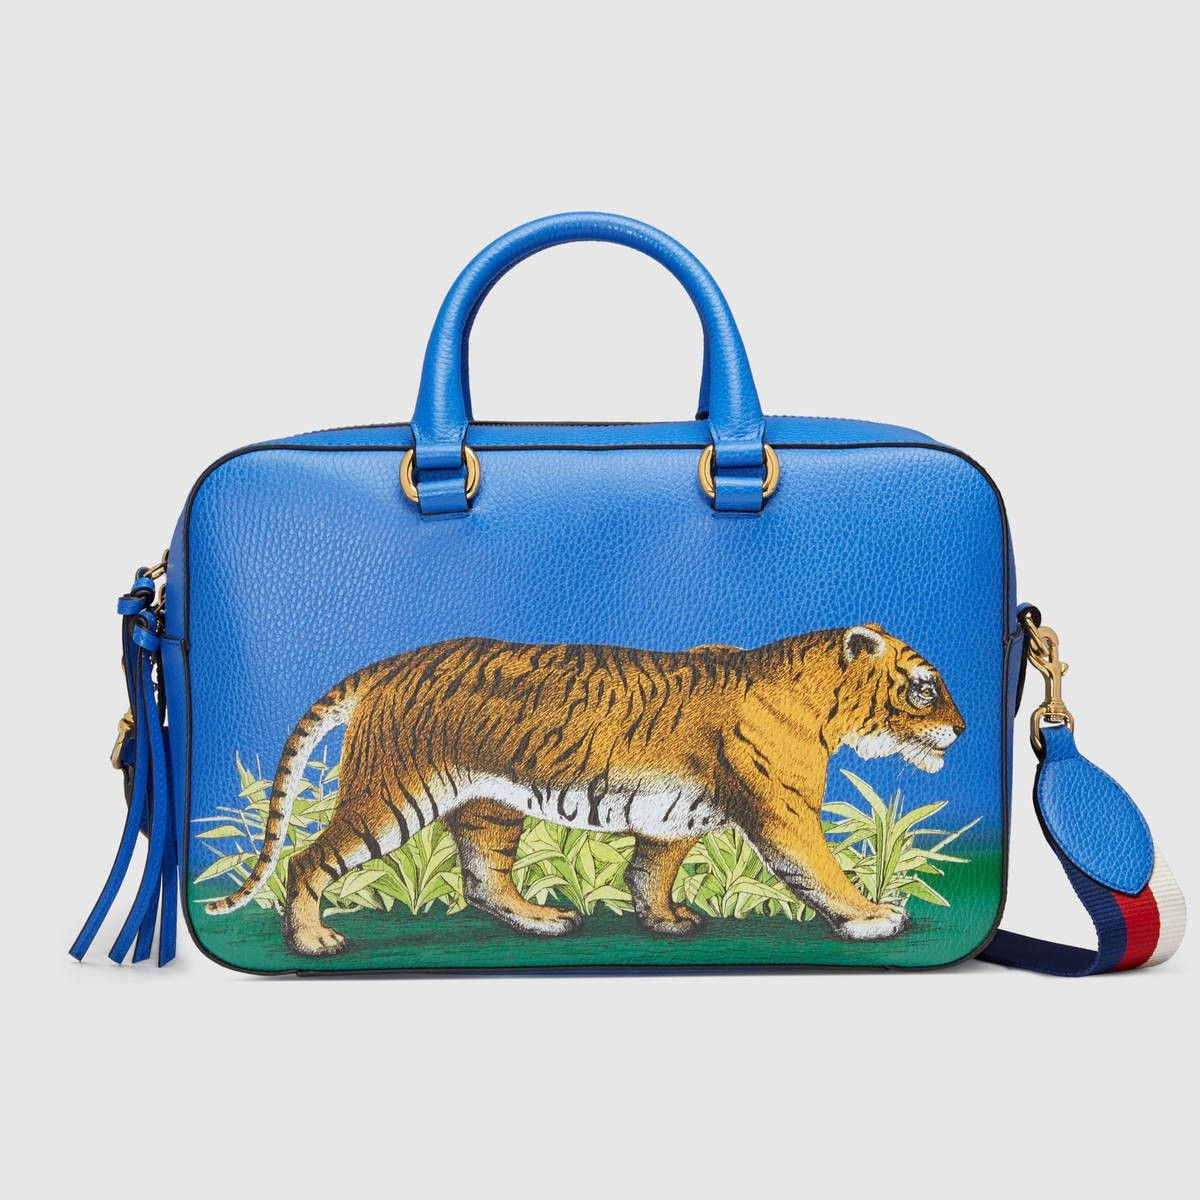 GUCCI Tiger Print Leather Top Handle Bag - Tiger Print. #gucci #bags #leather #lining #shoulder bags #linen #hand bags #nylon #cotton #